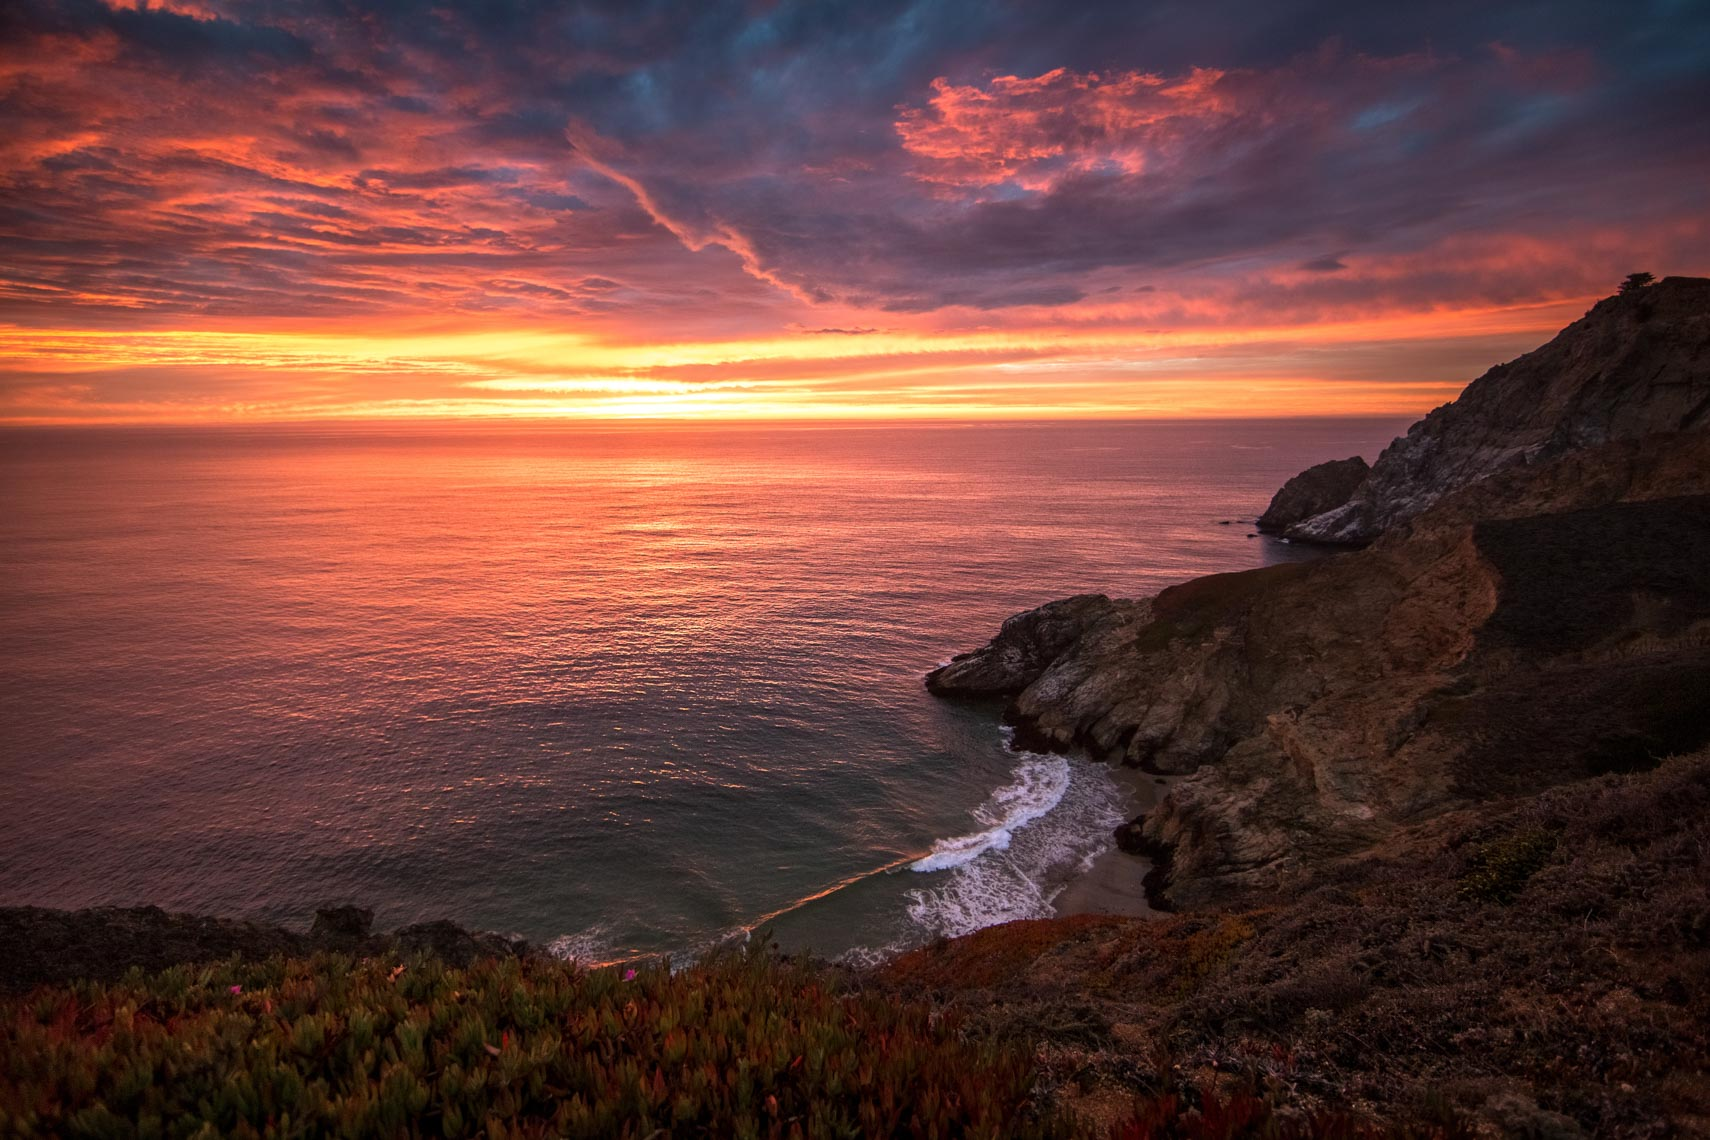 California sunset image by commercial photographer